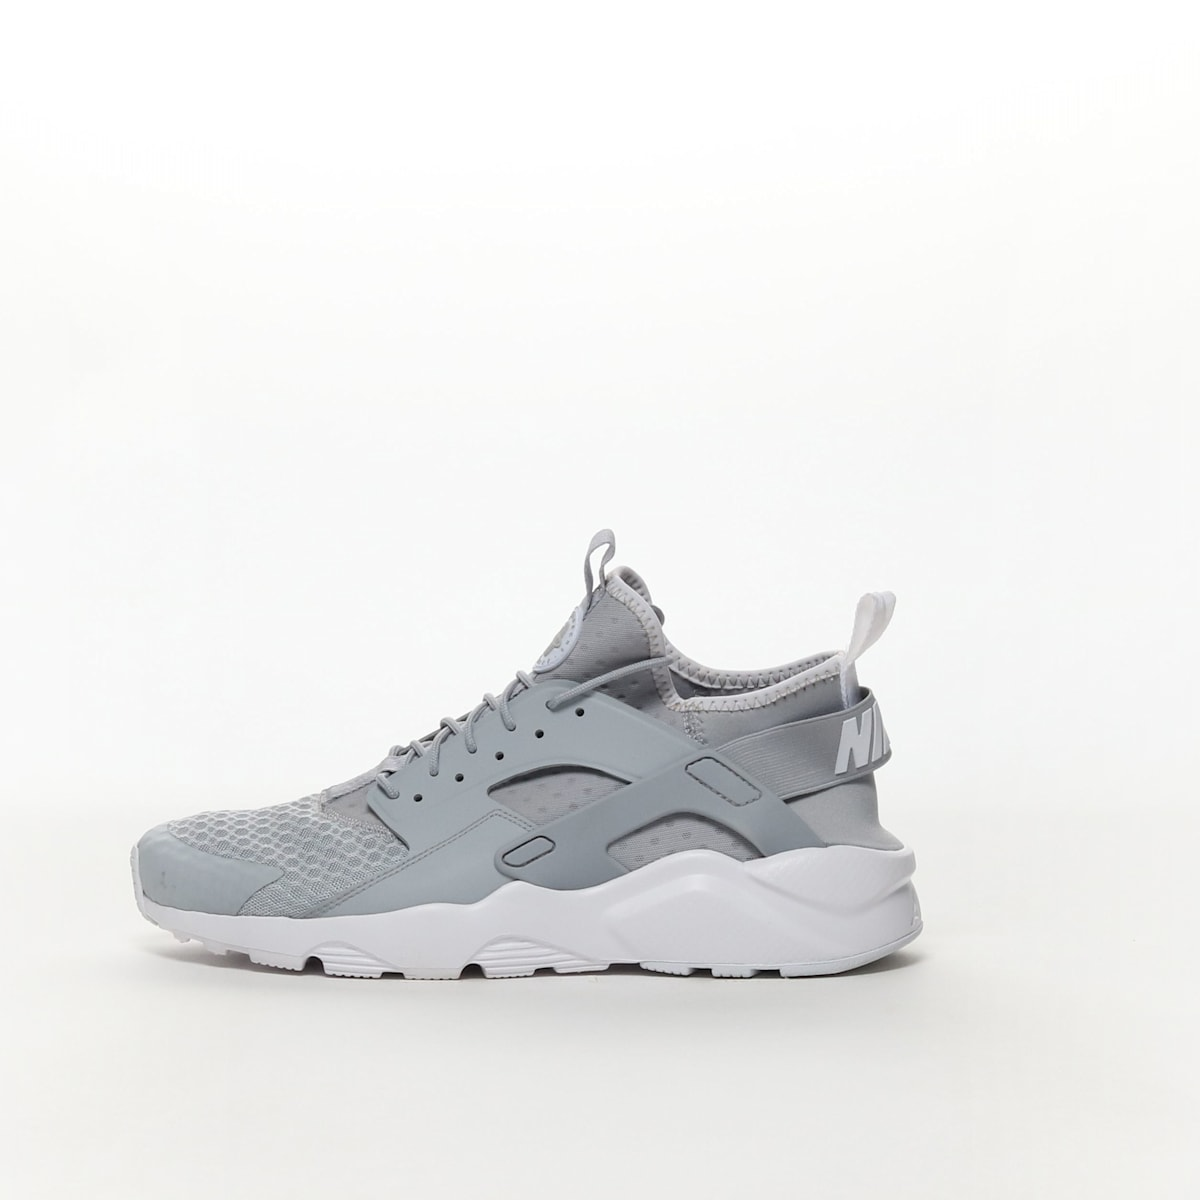 timeless design 64181 67ba5 ... Nike air huarache run ultra.  Actual Shoe